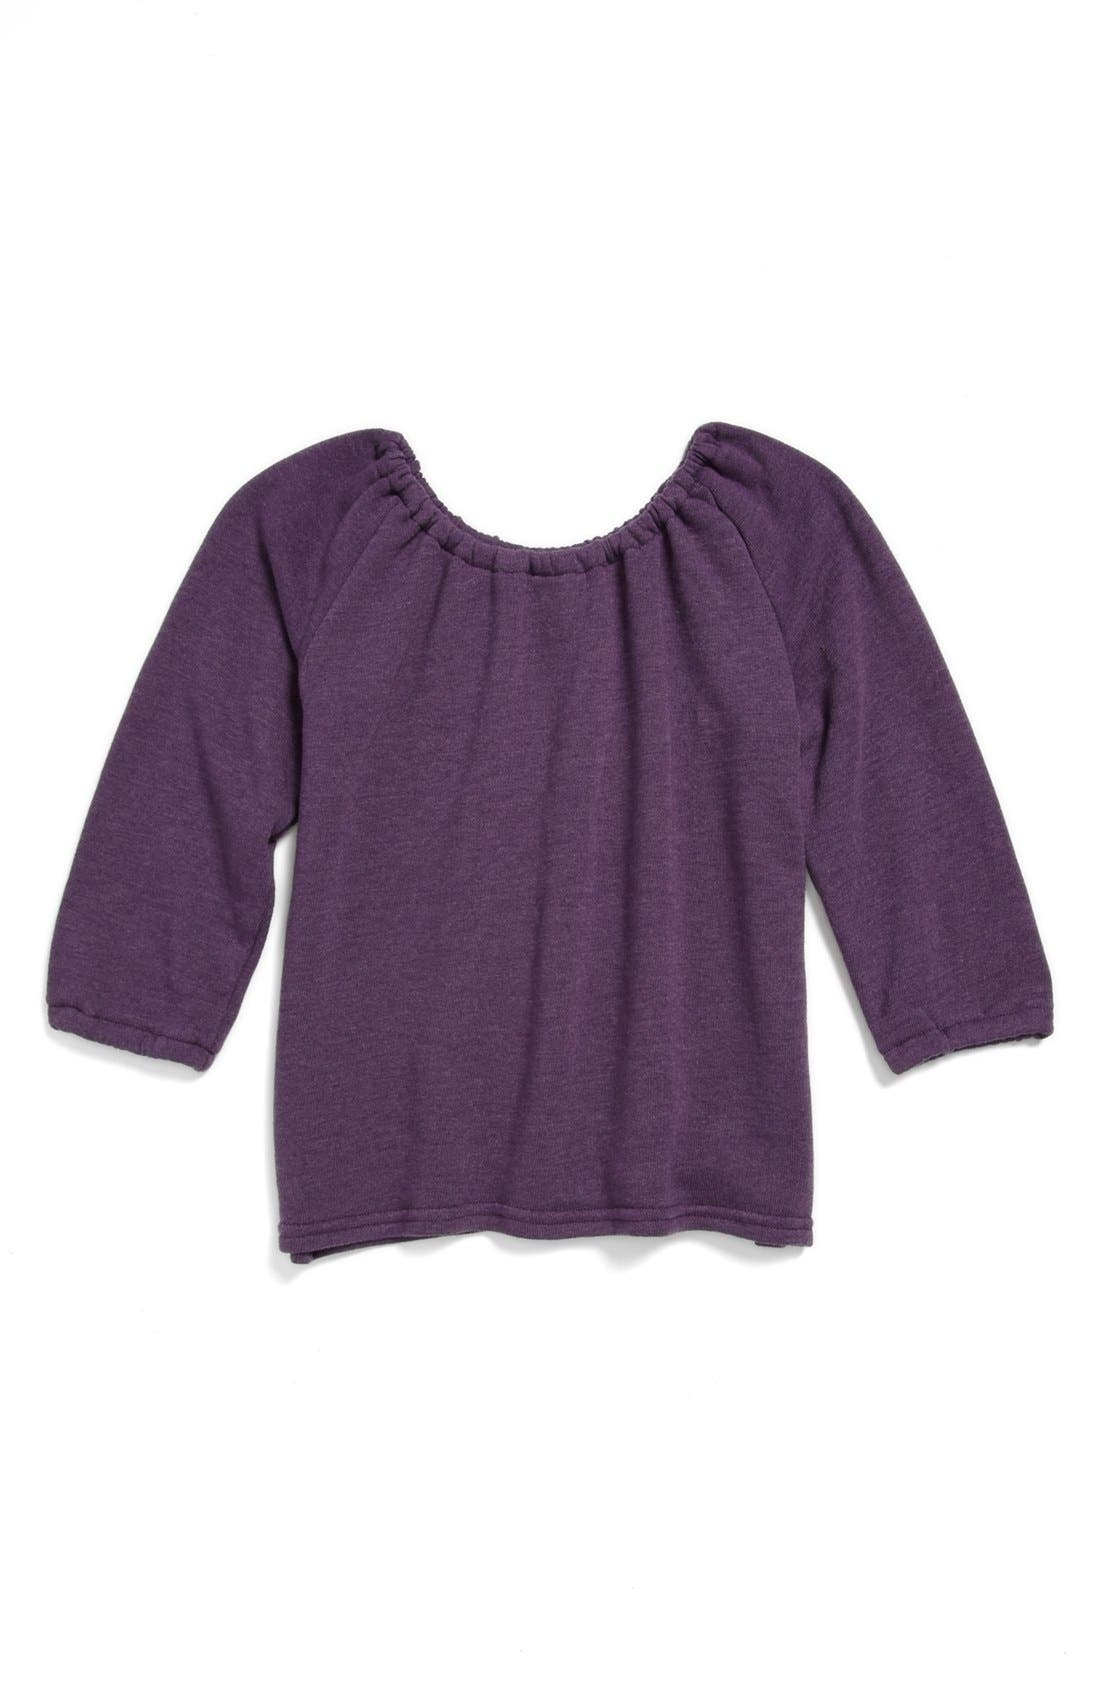 Main Image - Peek 'Helene' Tunic (Toddler Girls, Little Girls & Big Girls)